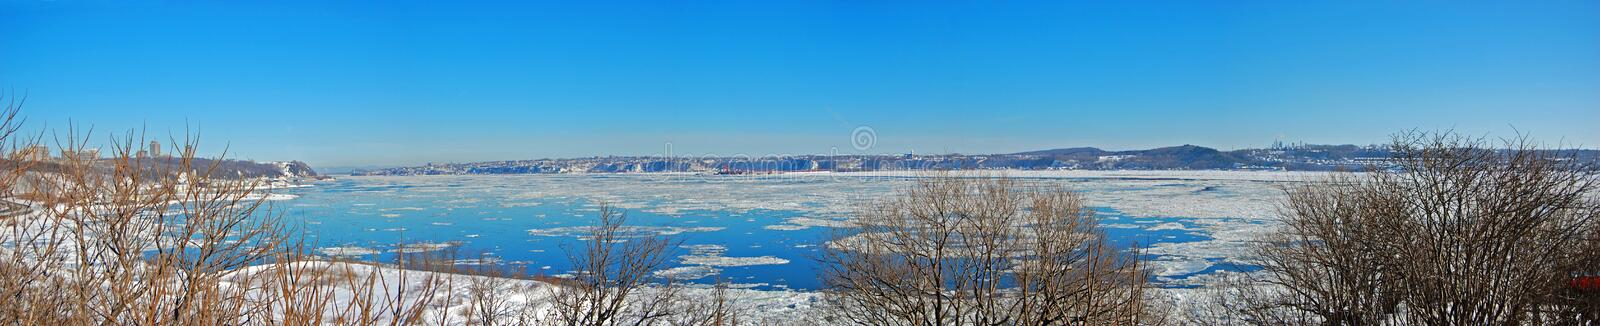 Levis City skyline and St. Lawrence River, Quebec, Canada stock photo